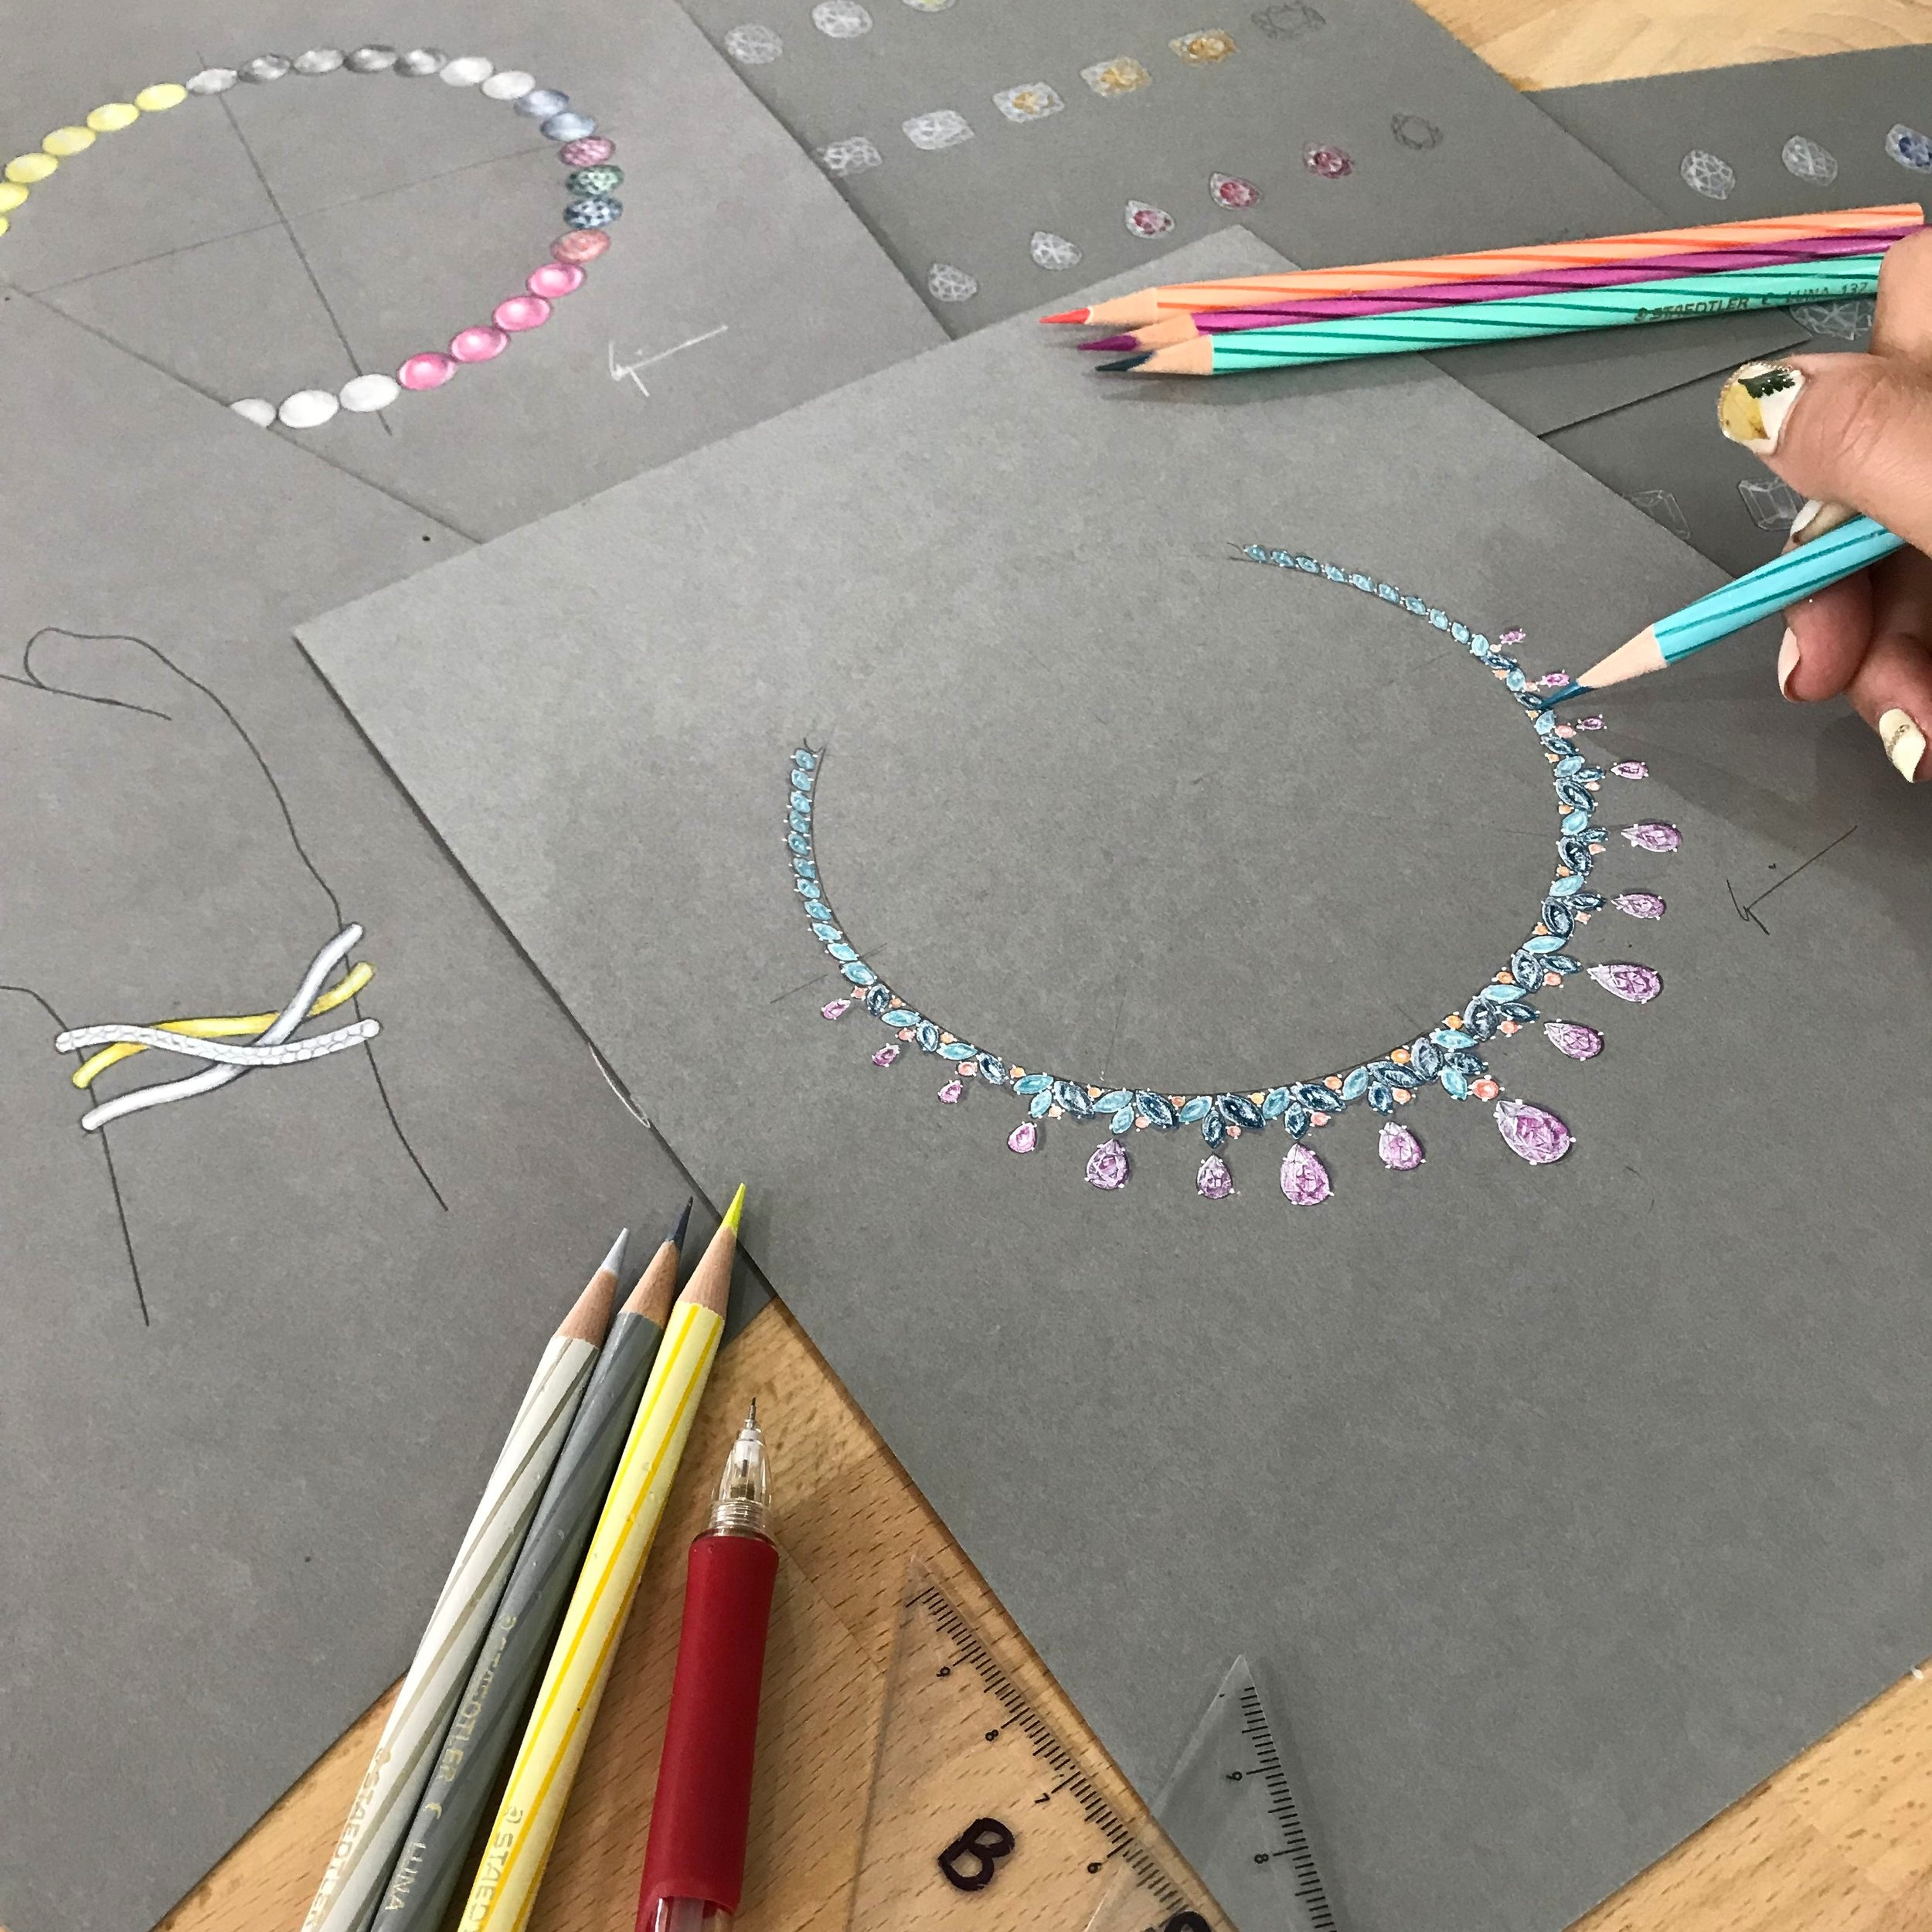 Jewellery Design and Rendering Level 1 - 6-day course covers drawing and rendering metals and gemstones using coloured pencils